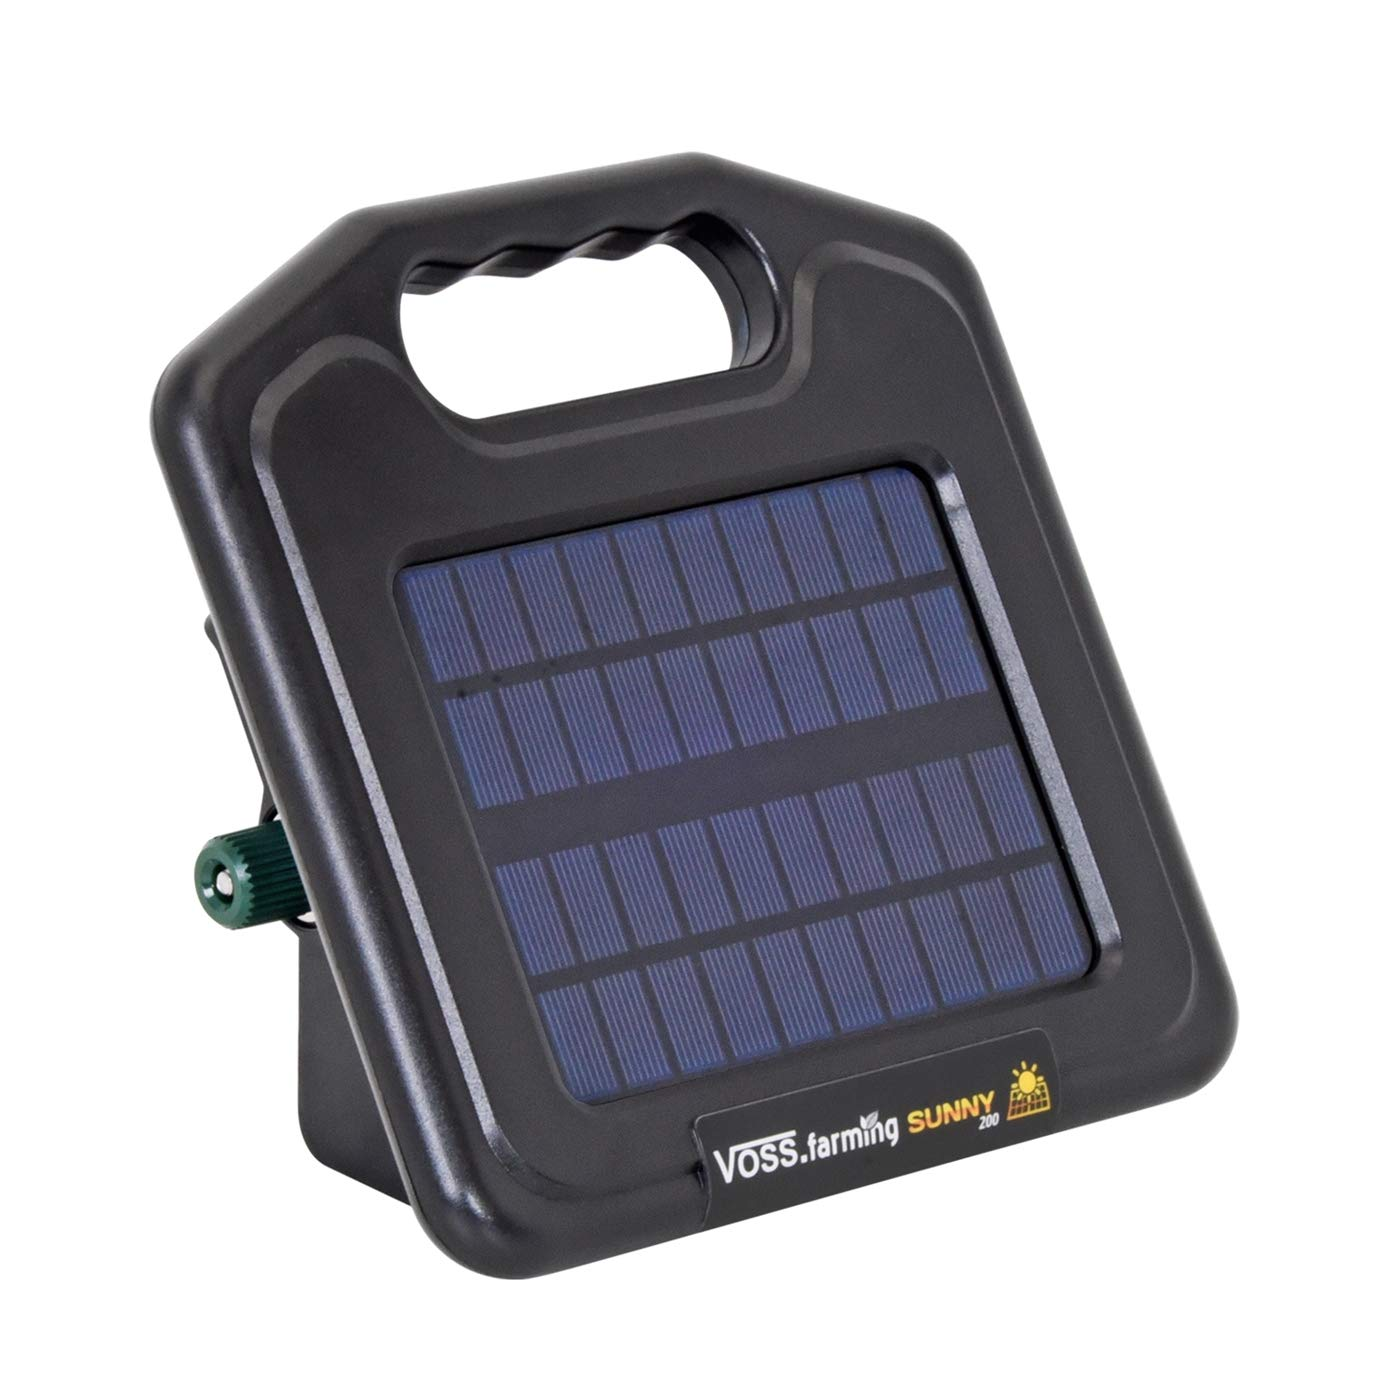 Mains Adapter VOSS.farming Sunny 200 Electric Fence Solar Energiser 8,000 V incl Built-In Li-Ion Rechargeable Battery 0.16 J